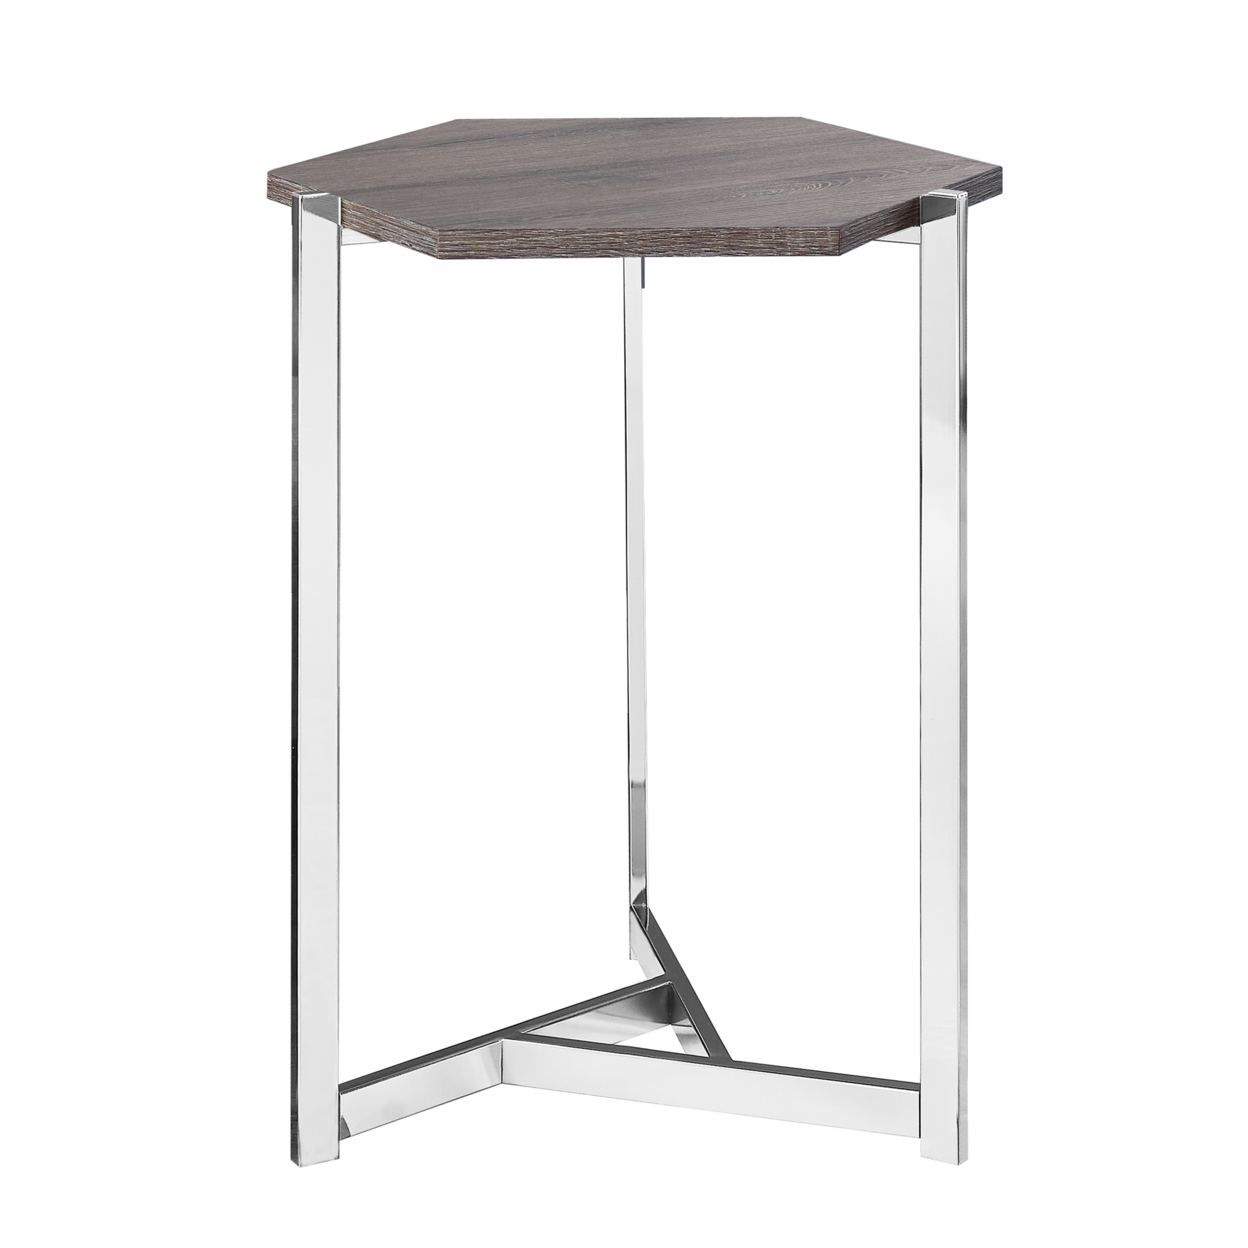 ACCENT TABLE - HEXAGON, DARK TAUPE, CHROME METAL напольная плитка cerdomus chrome kirman taupe rett 60x60